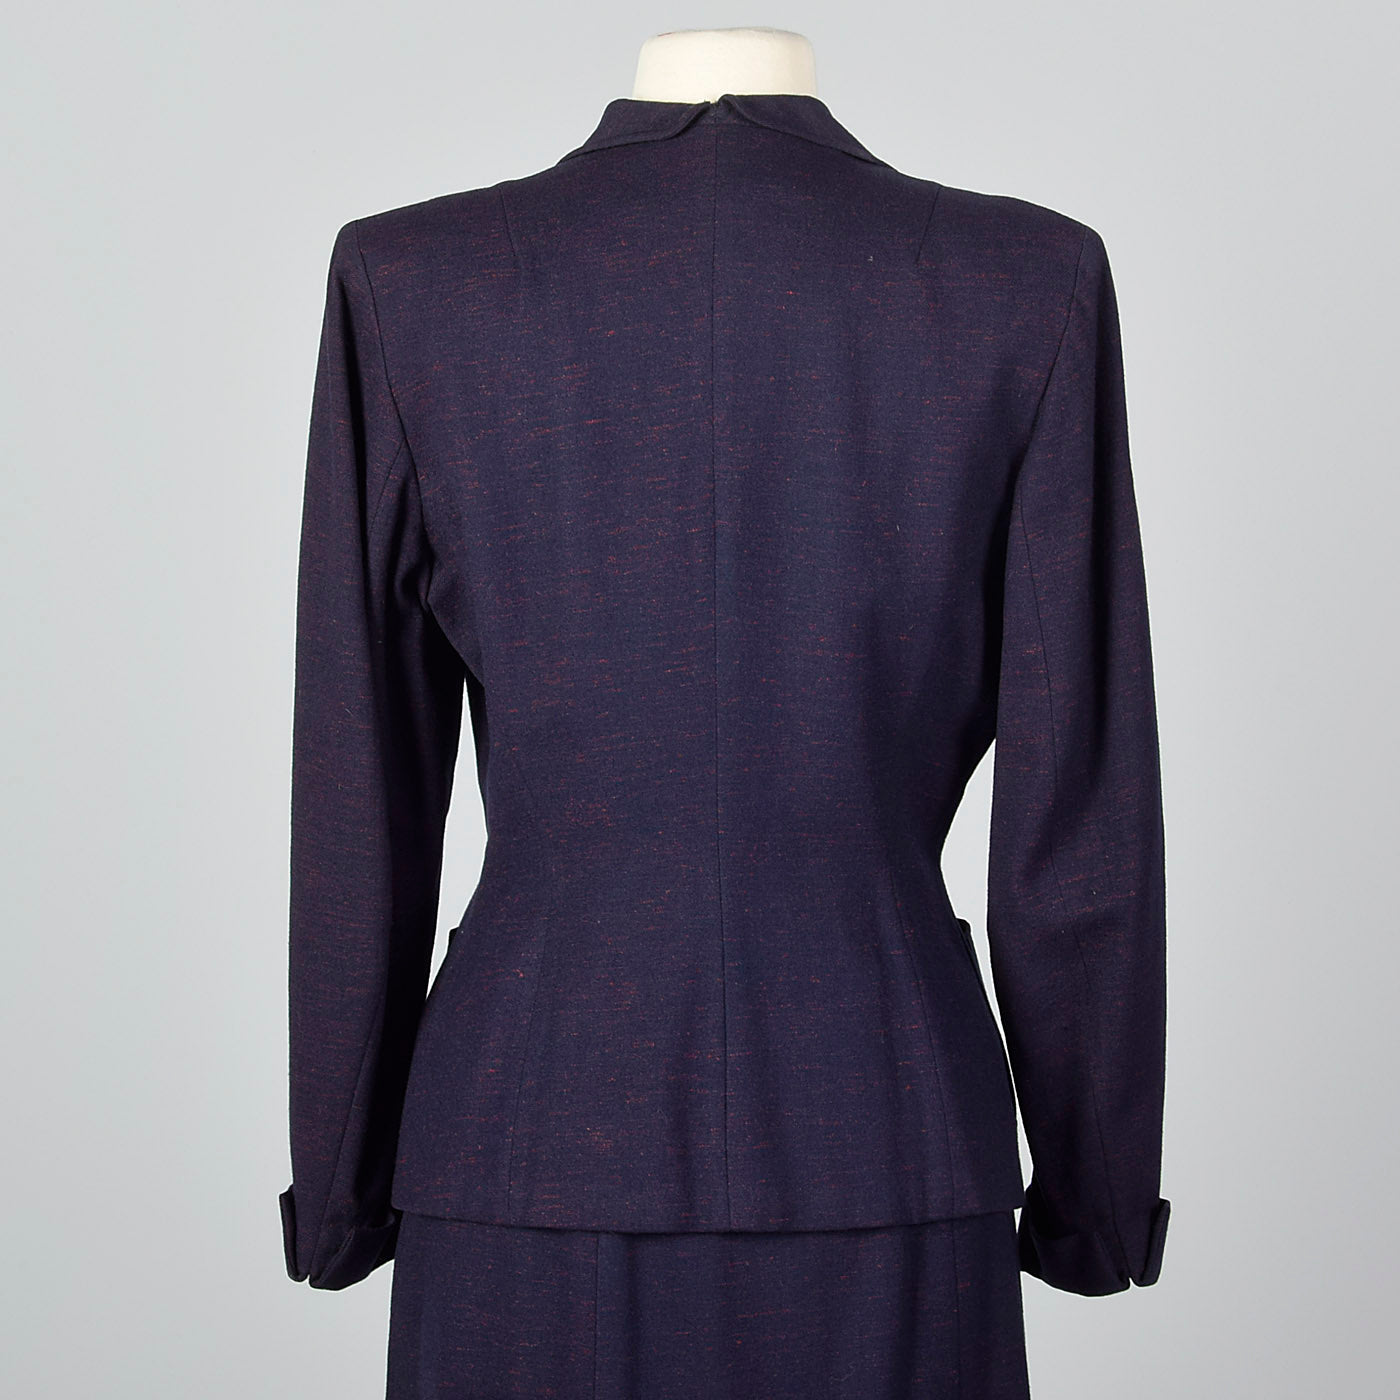 1950s Navy Blue Skirt Suit with Decorative Buttons